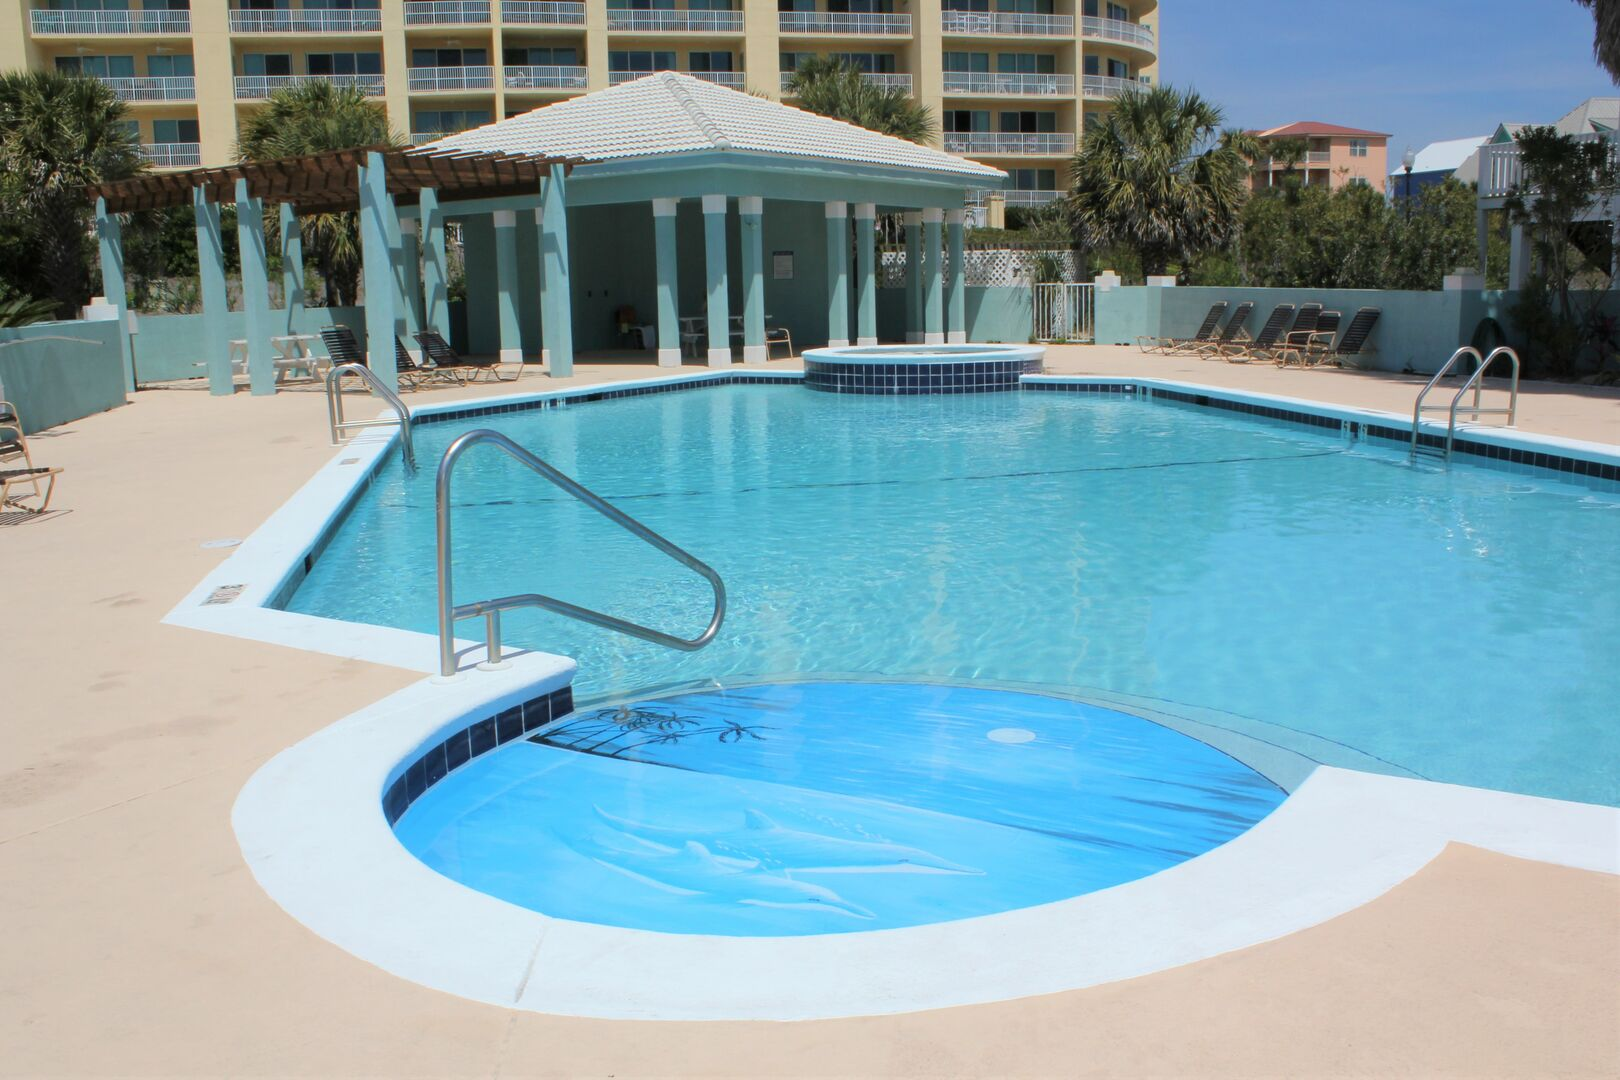 Guests Can Enjoy the Community Pool.